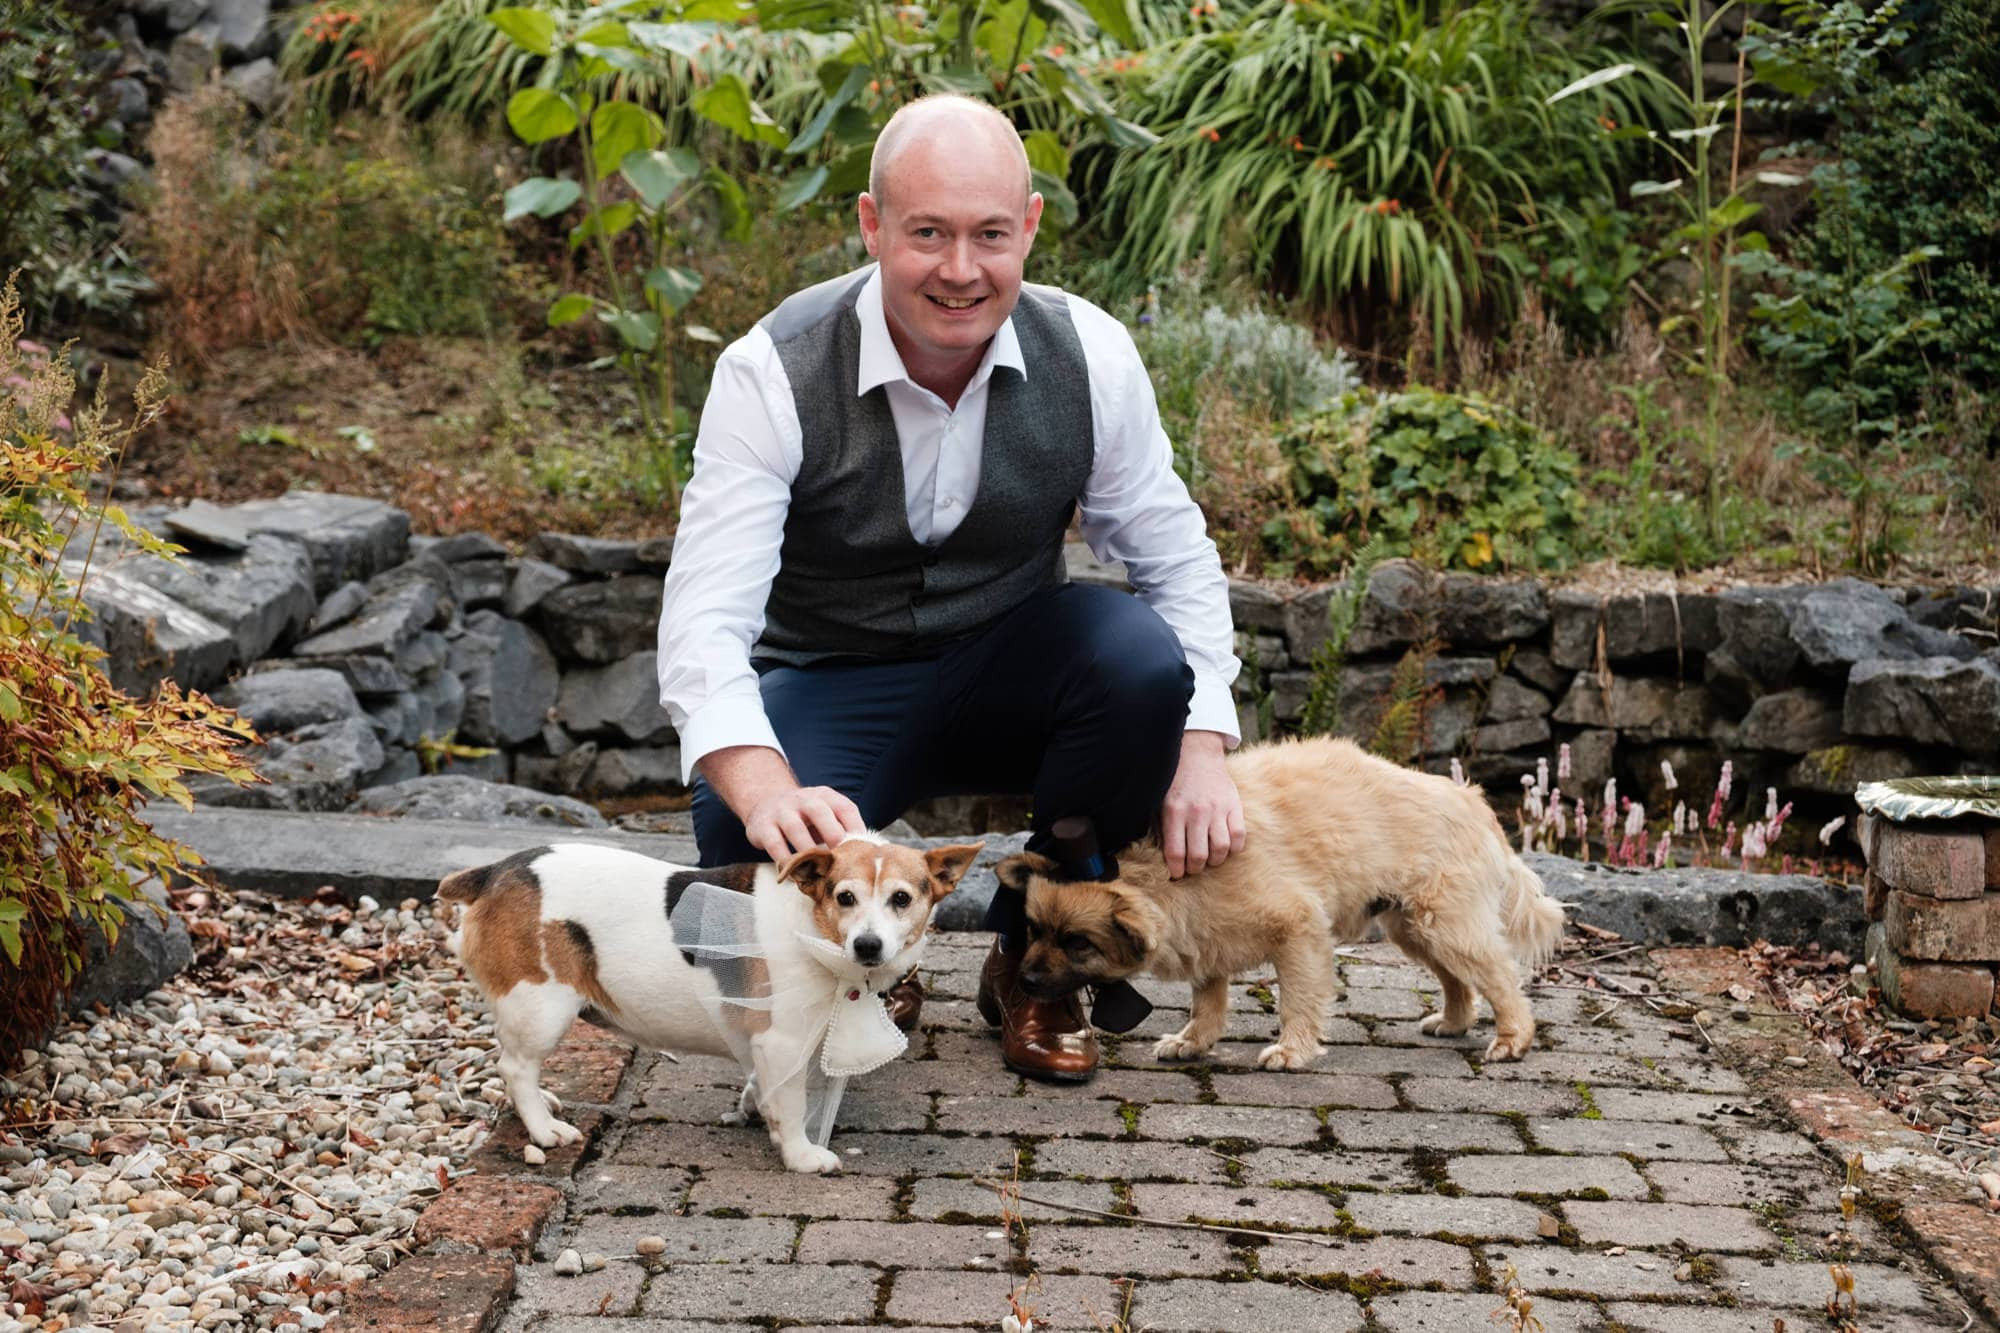 groom at home with dogs before wedding